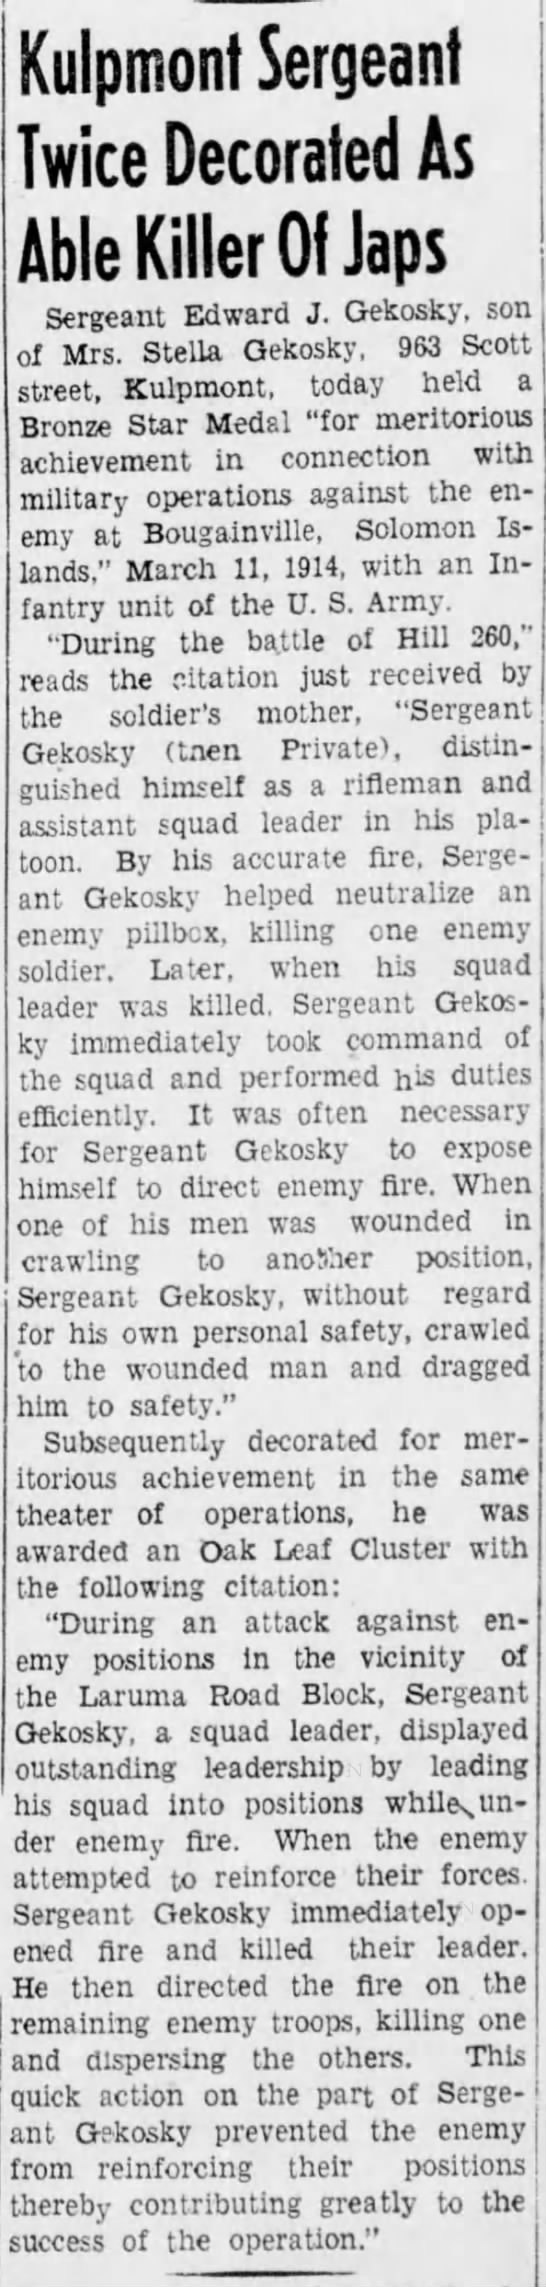 An article about Grandfather Edward Gekosky in WWII South Pacific [Mount Carmel newspaper] - Kulpmont Sergeant Twice Decorated As Able...